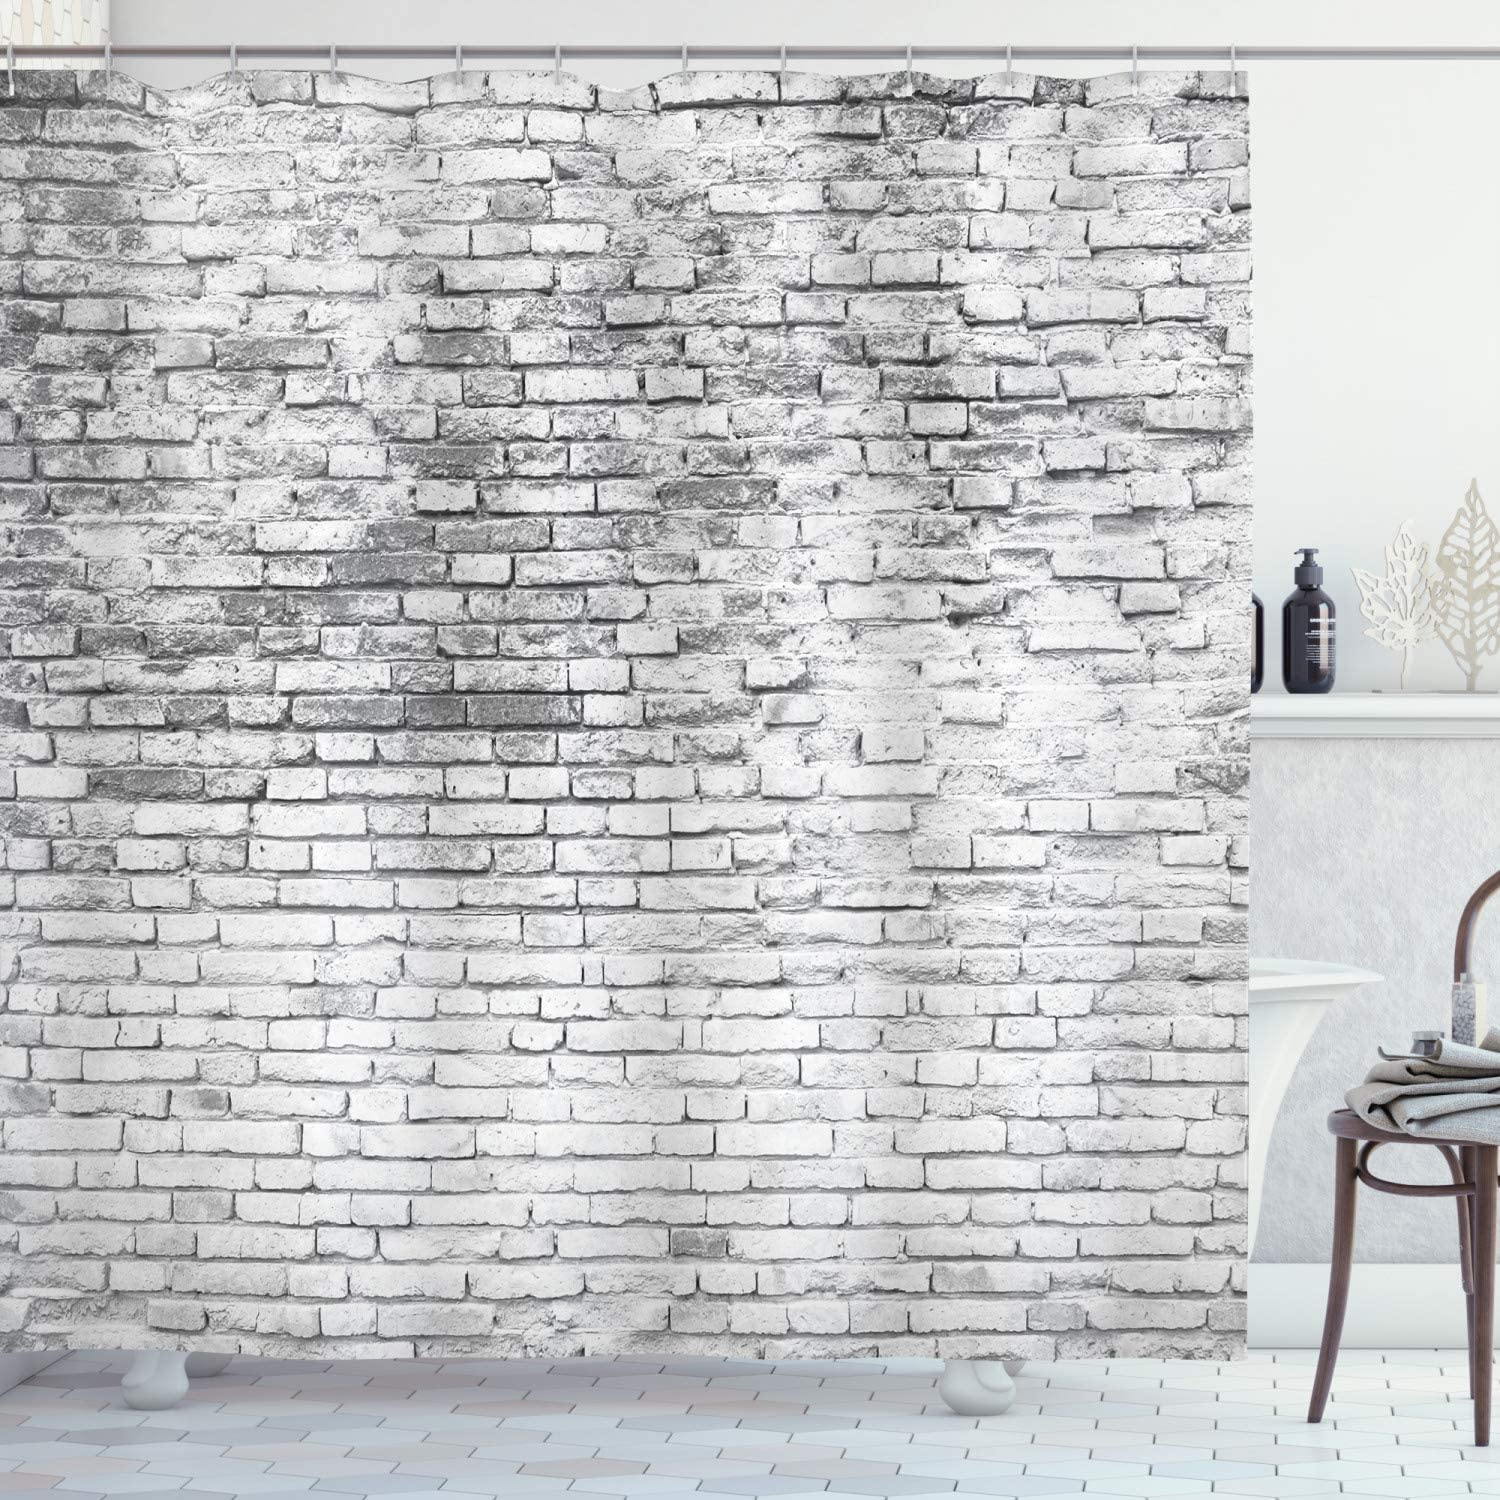 "Ambesonne Brick Wall Shower Curtain, Worn and Cracked Grunge Stained Brick Wall Masonry Architecture Image Print, Cloth Fabric Bathroom Decor Set with Hooks, 70"" Long, White Grey"